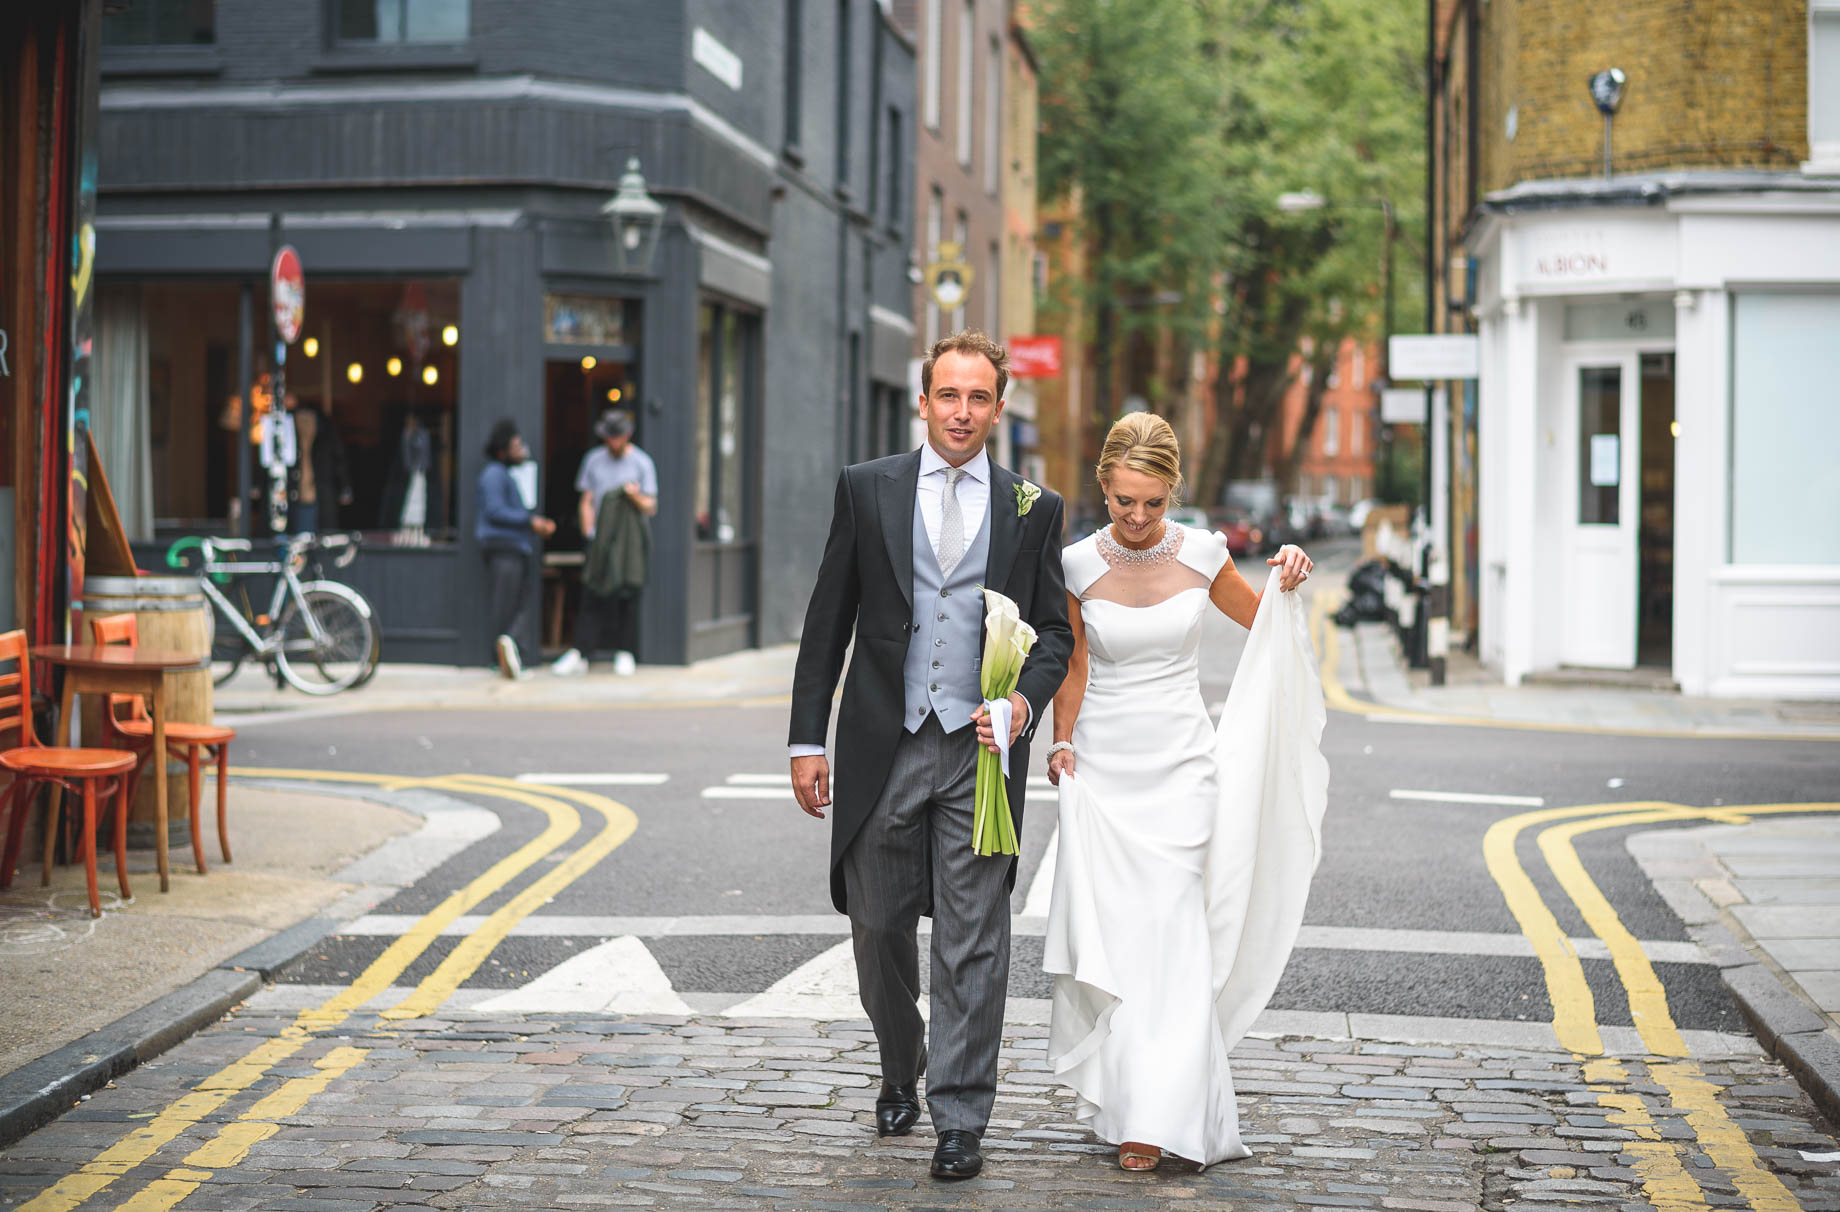 Shoreditch wedding photography - Guy Collier - Kat and Henry (120 of 200)